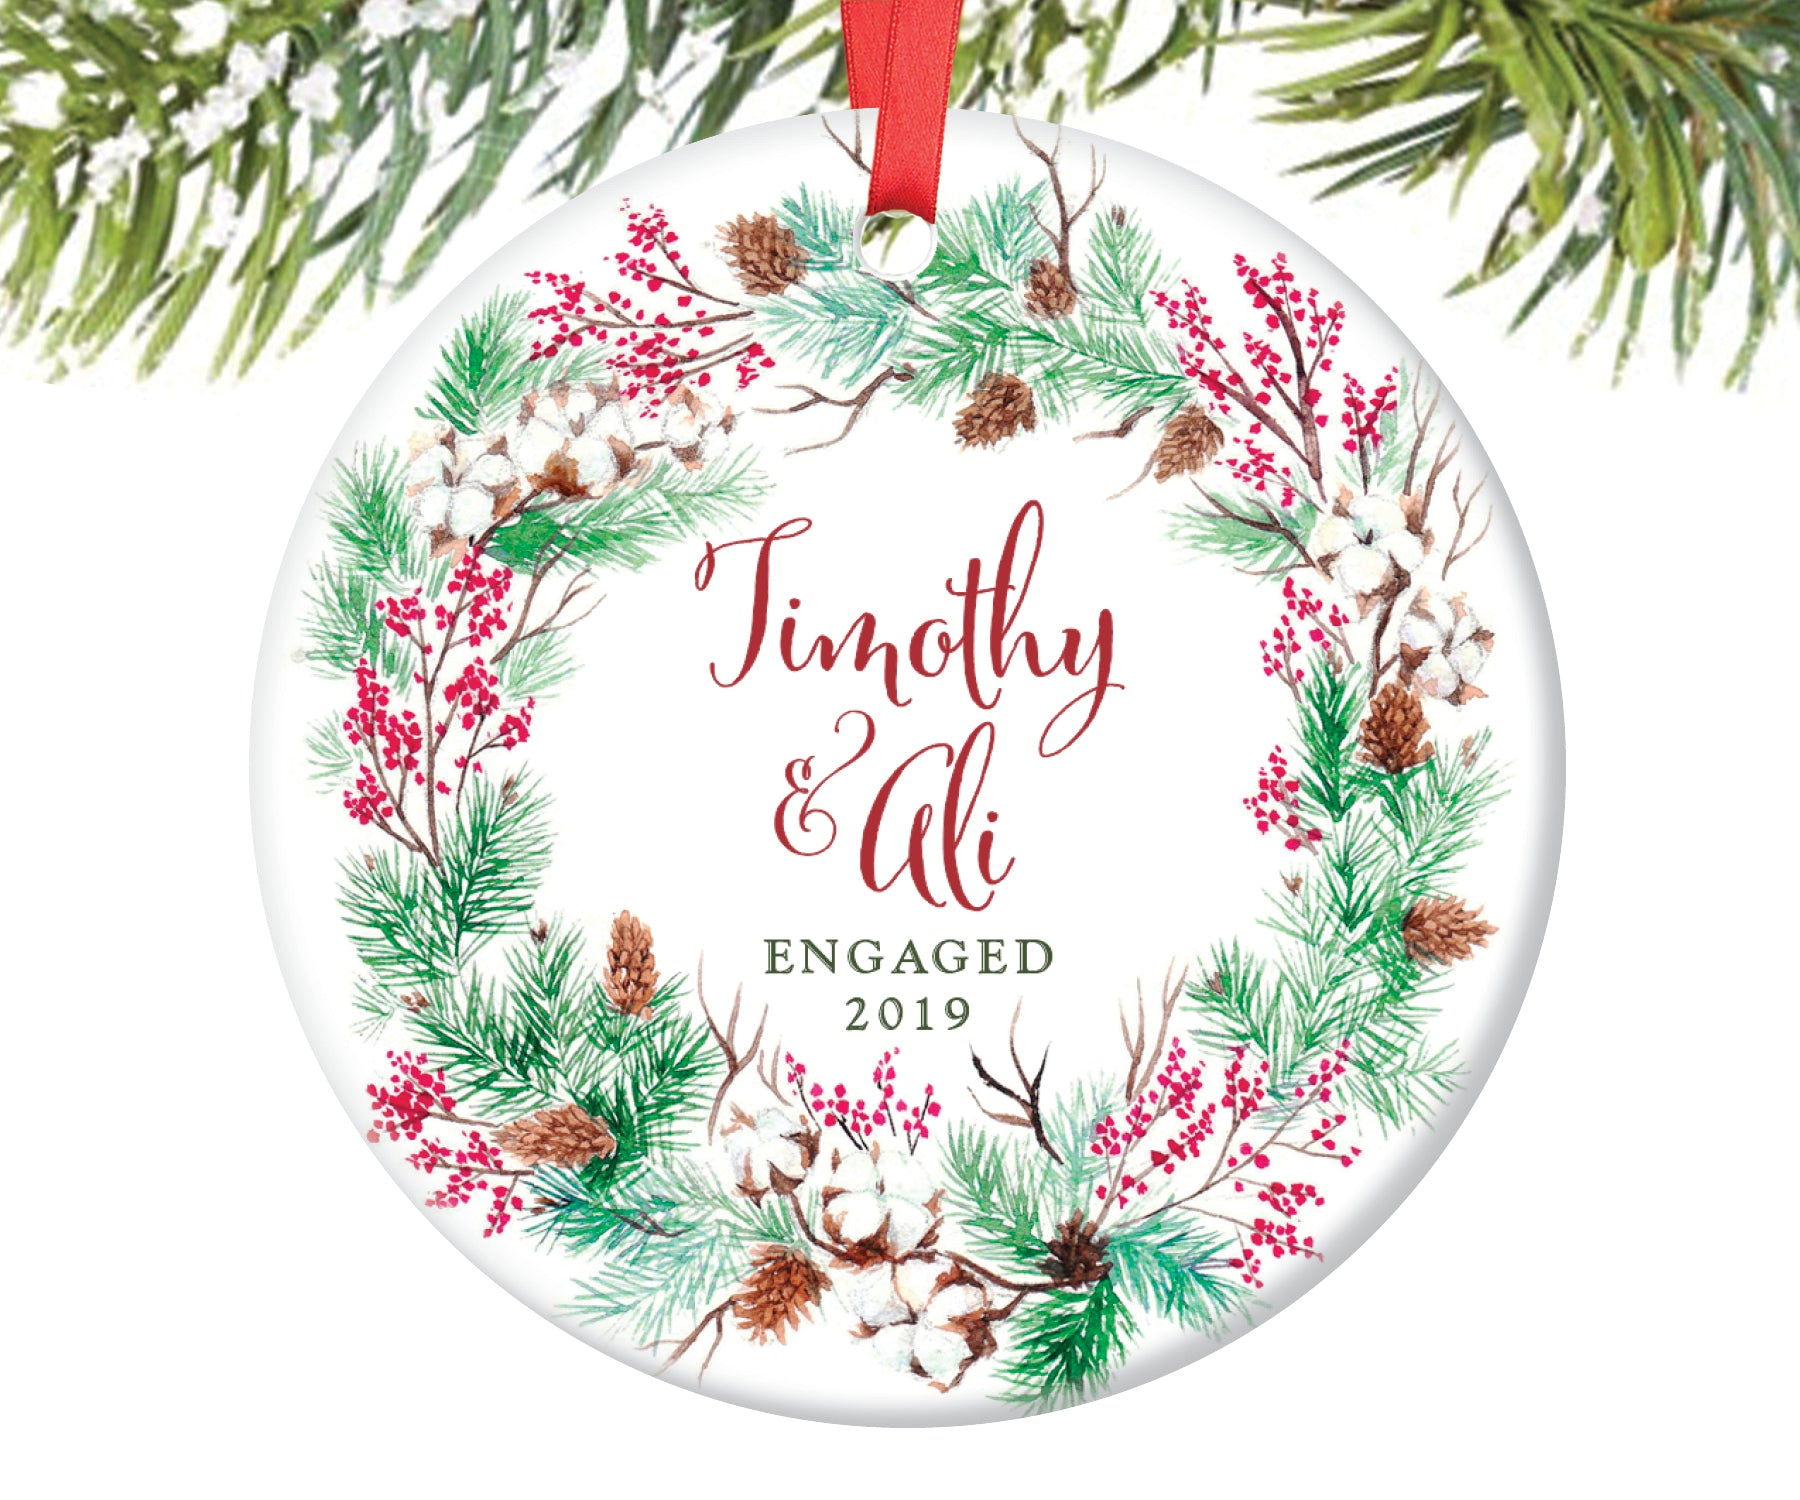 Engaged Christmas Ornament, Personalized | 131